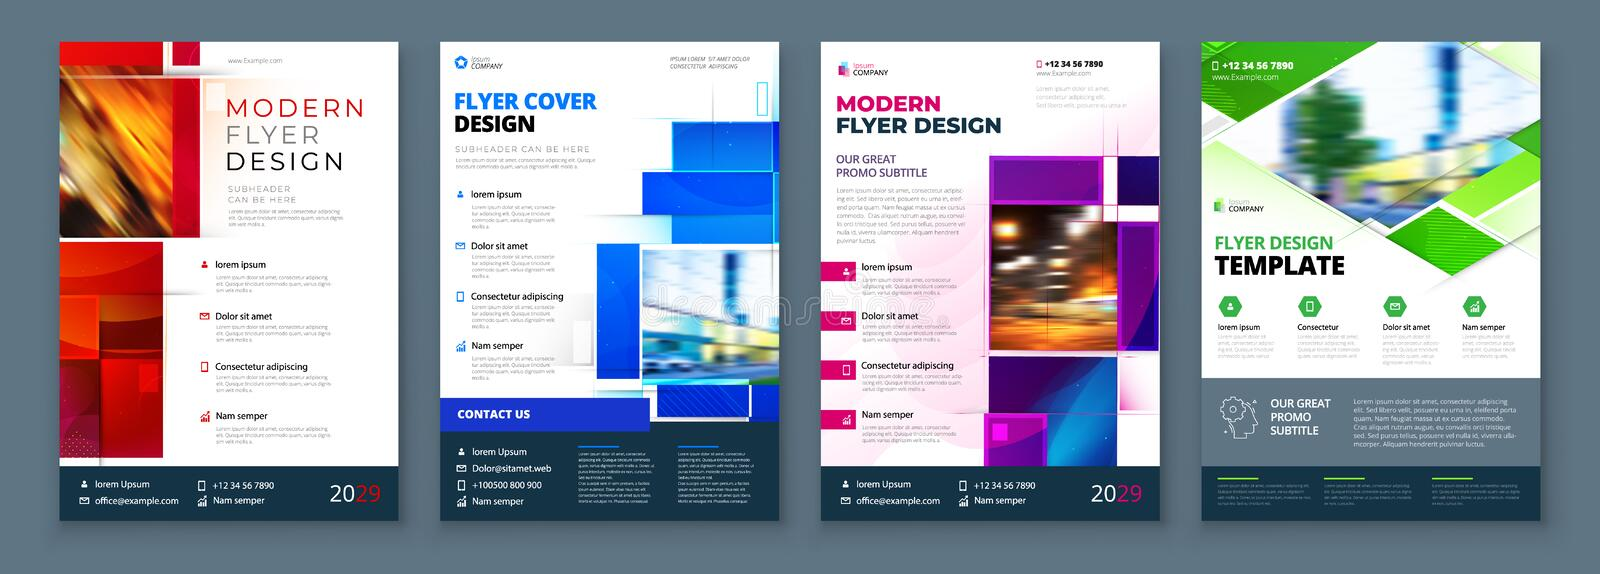 Flyer Template Layout Design Corporate Business Flyer, Report, Catalog, Magazine Mockup Kreatives, modernes Lichtkonzept lizenzfreie abbildung